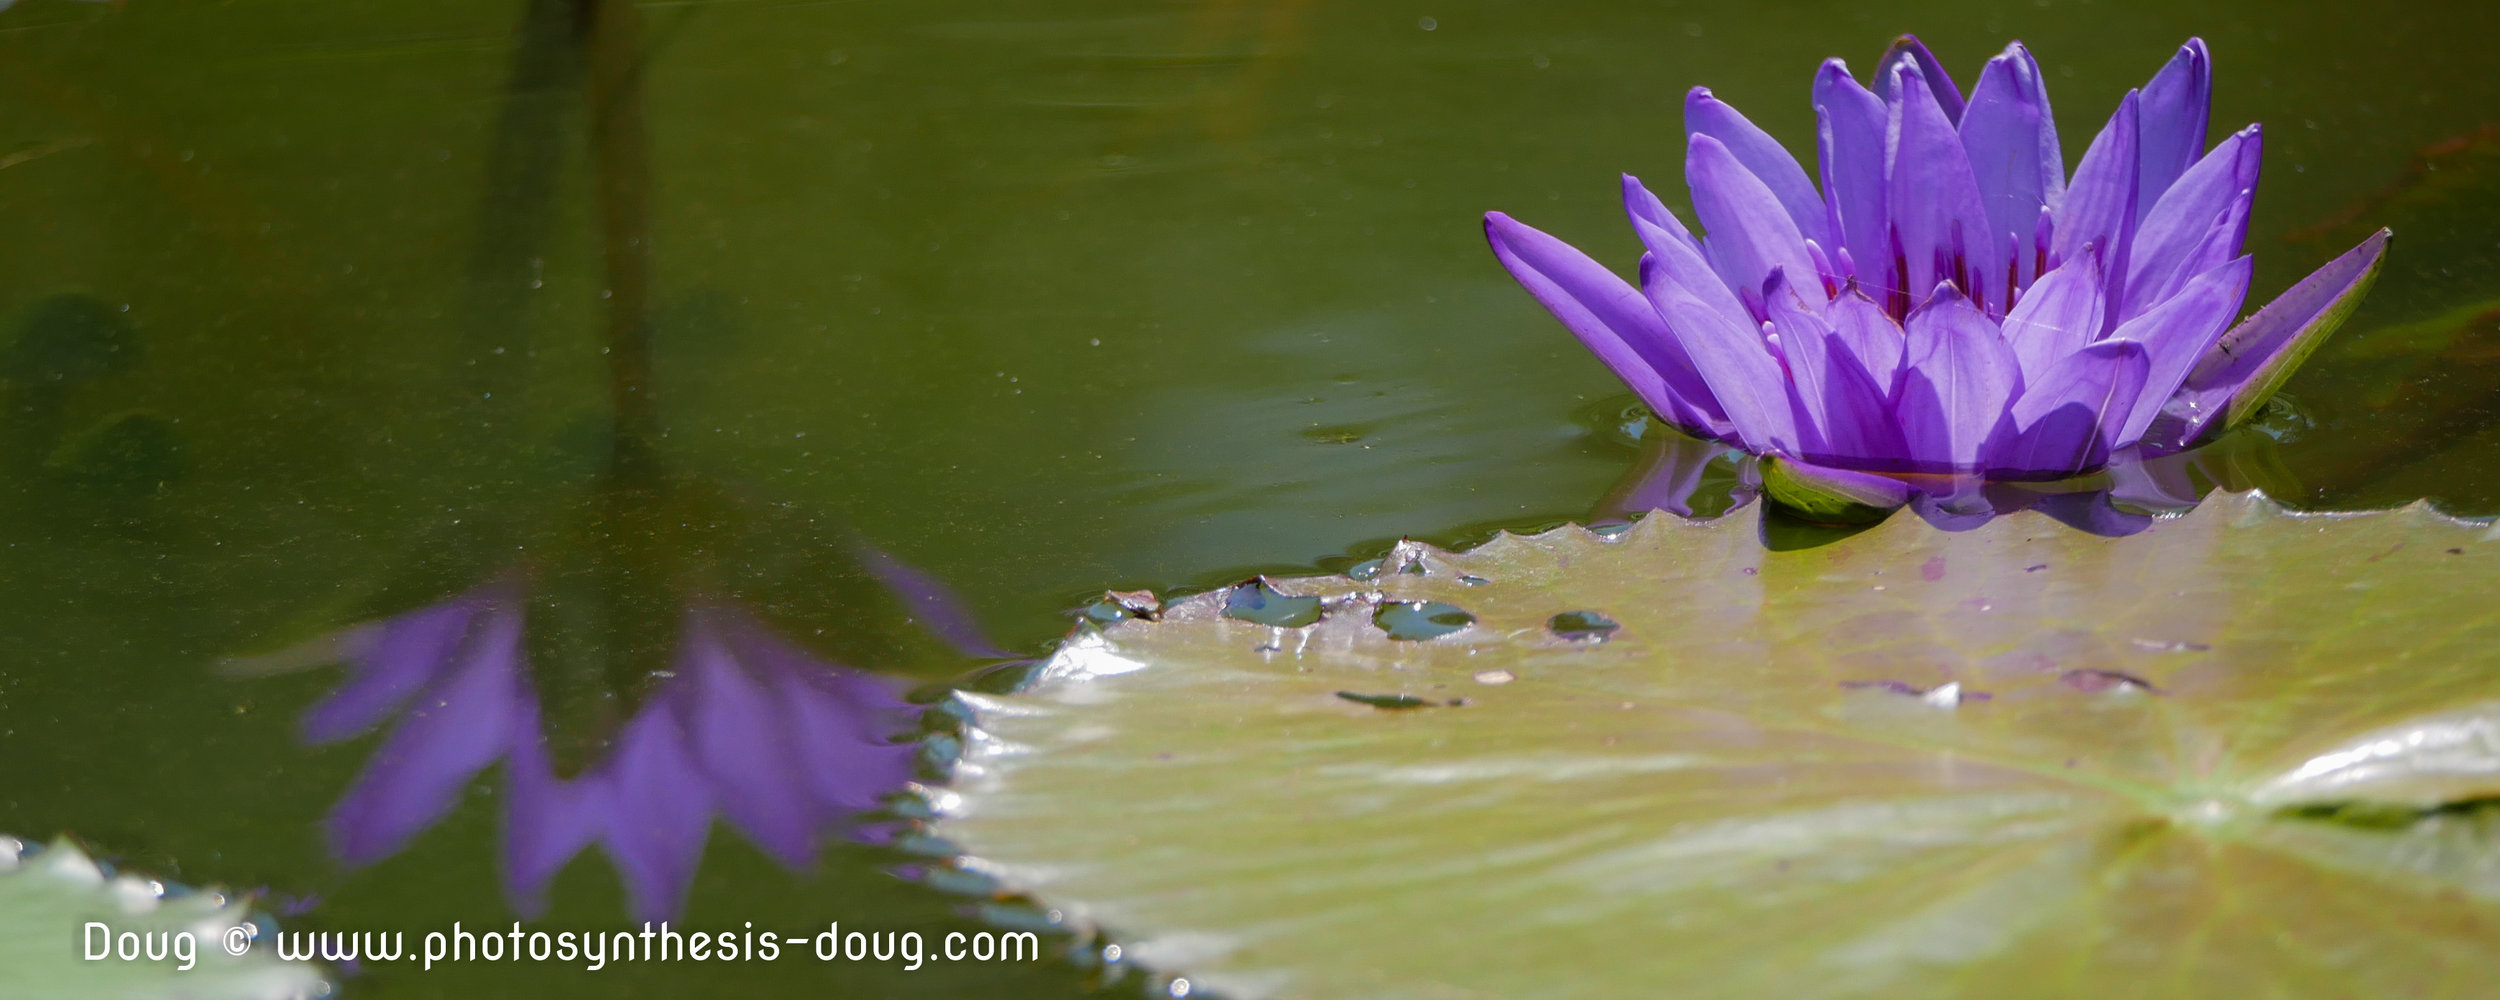 water lily-1150698-2.JPG